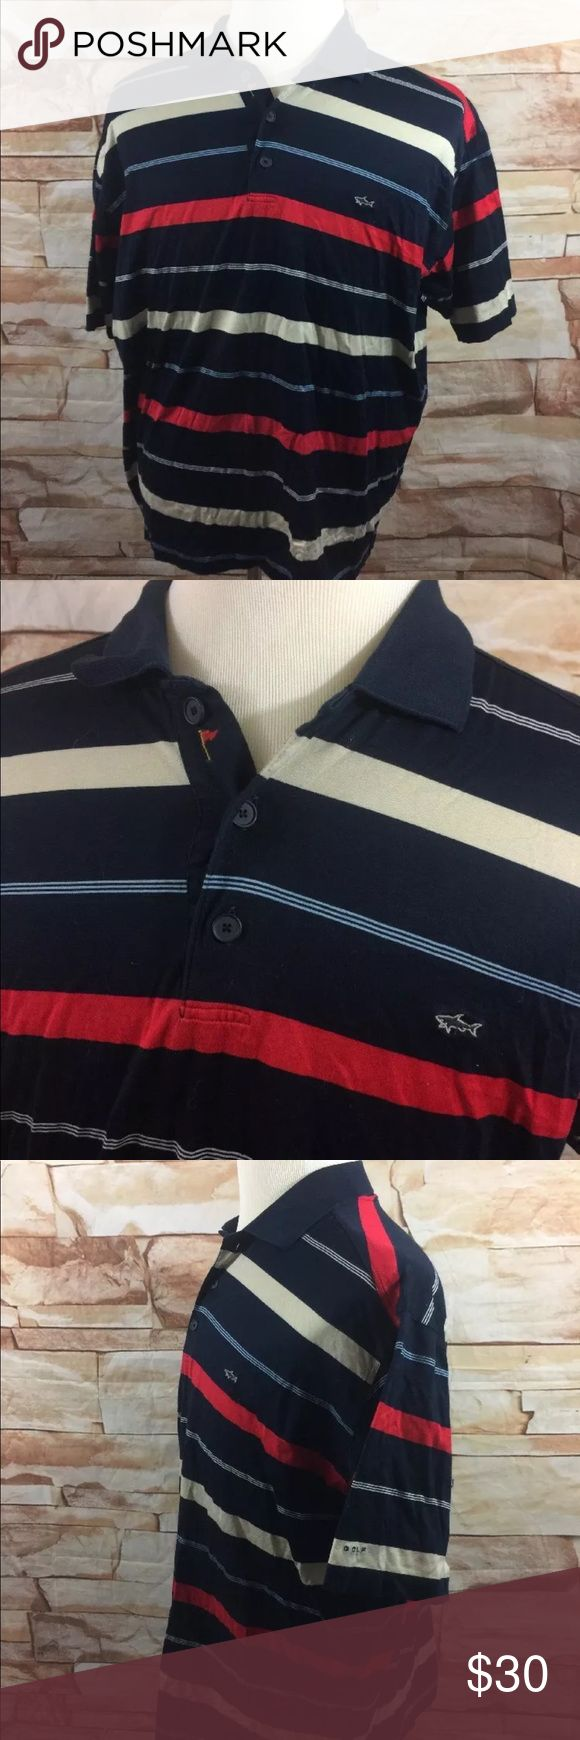 """Paul & Shark Yachting Golf Polo Shirt Paul & Shark Yachting  Made in Italy  Polo Shirt  Mens 3XL   Measurements Approximate: Shoulder to Shoulder - 22"""" Armpit to Armpit - 27"""" Sleeve Length - 10"""" Shirt Length - 29""""  Paul & Shark sizes run small. See measurements! Paul & Shark Shirts Polos"""